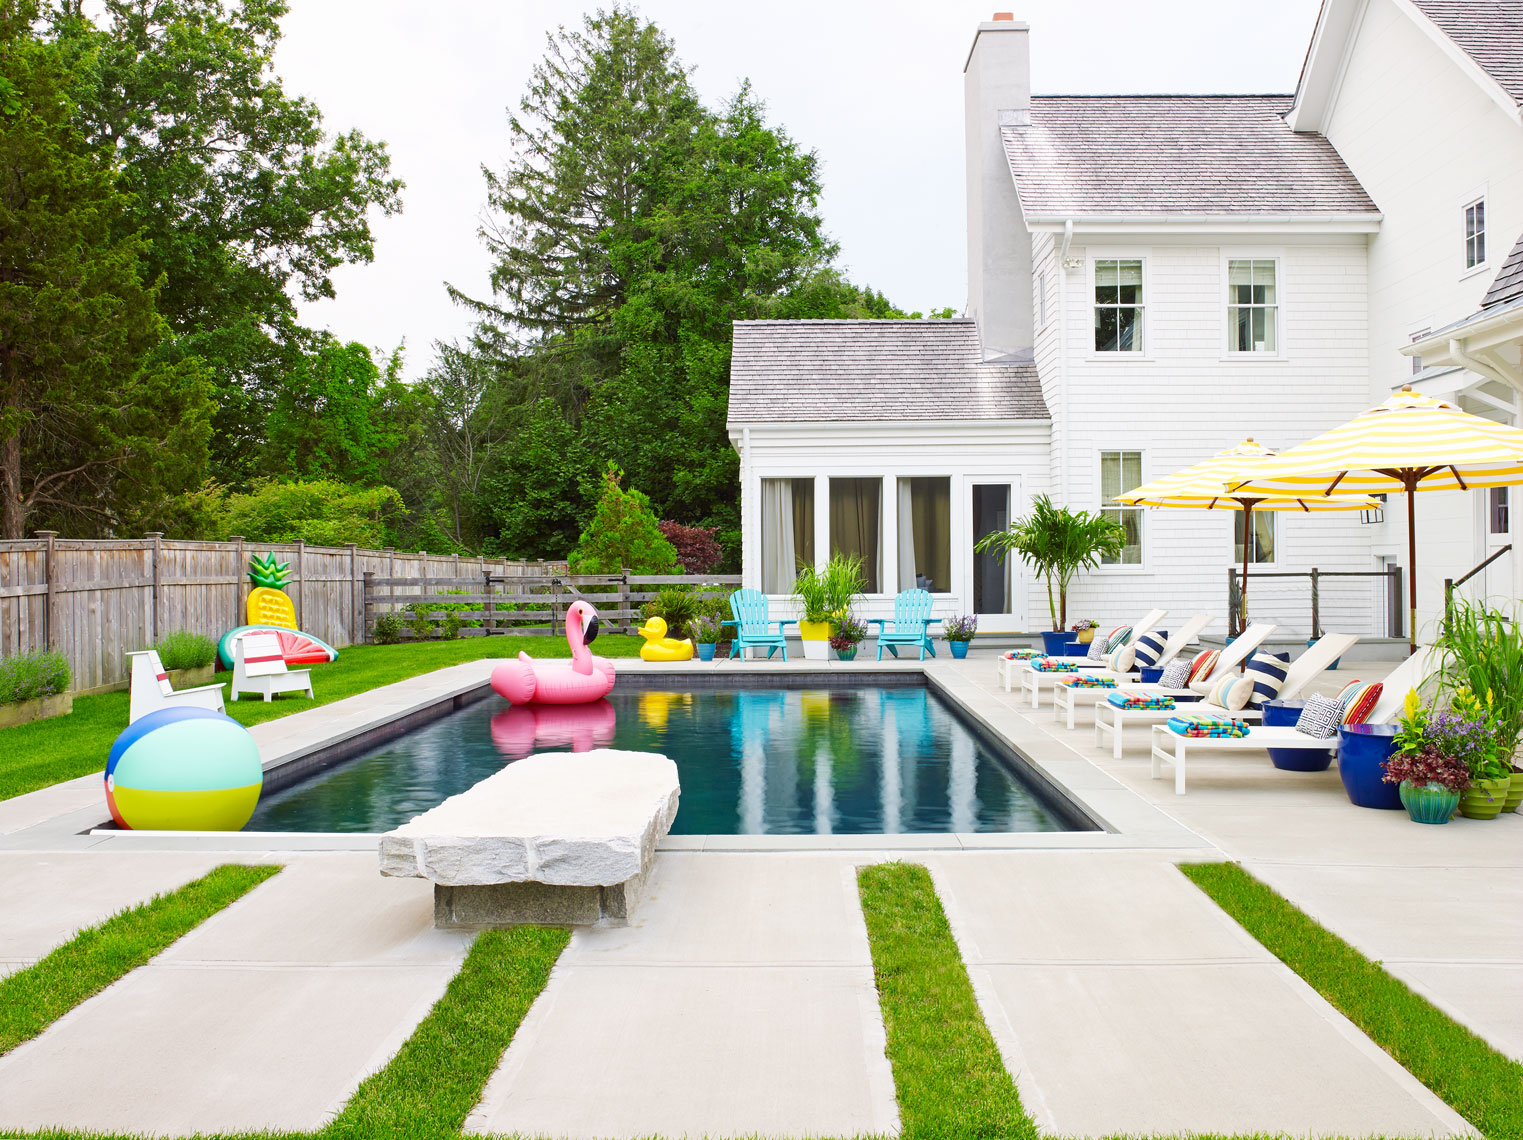 HGTV_Hogue_WestportCT_Pool49141_retCrop_APF